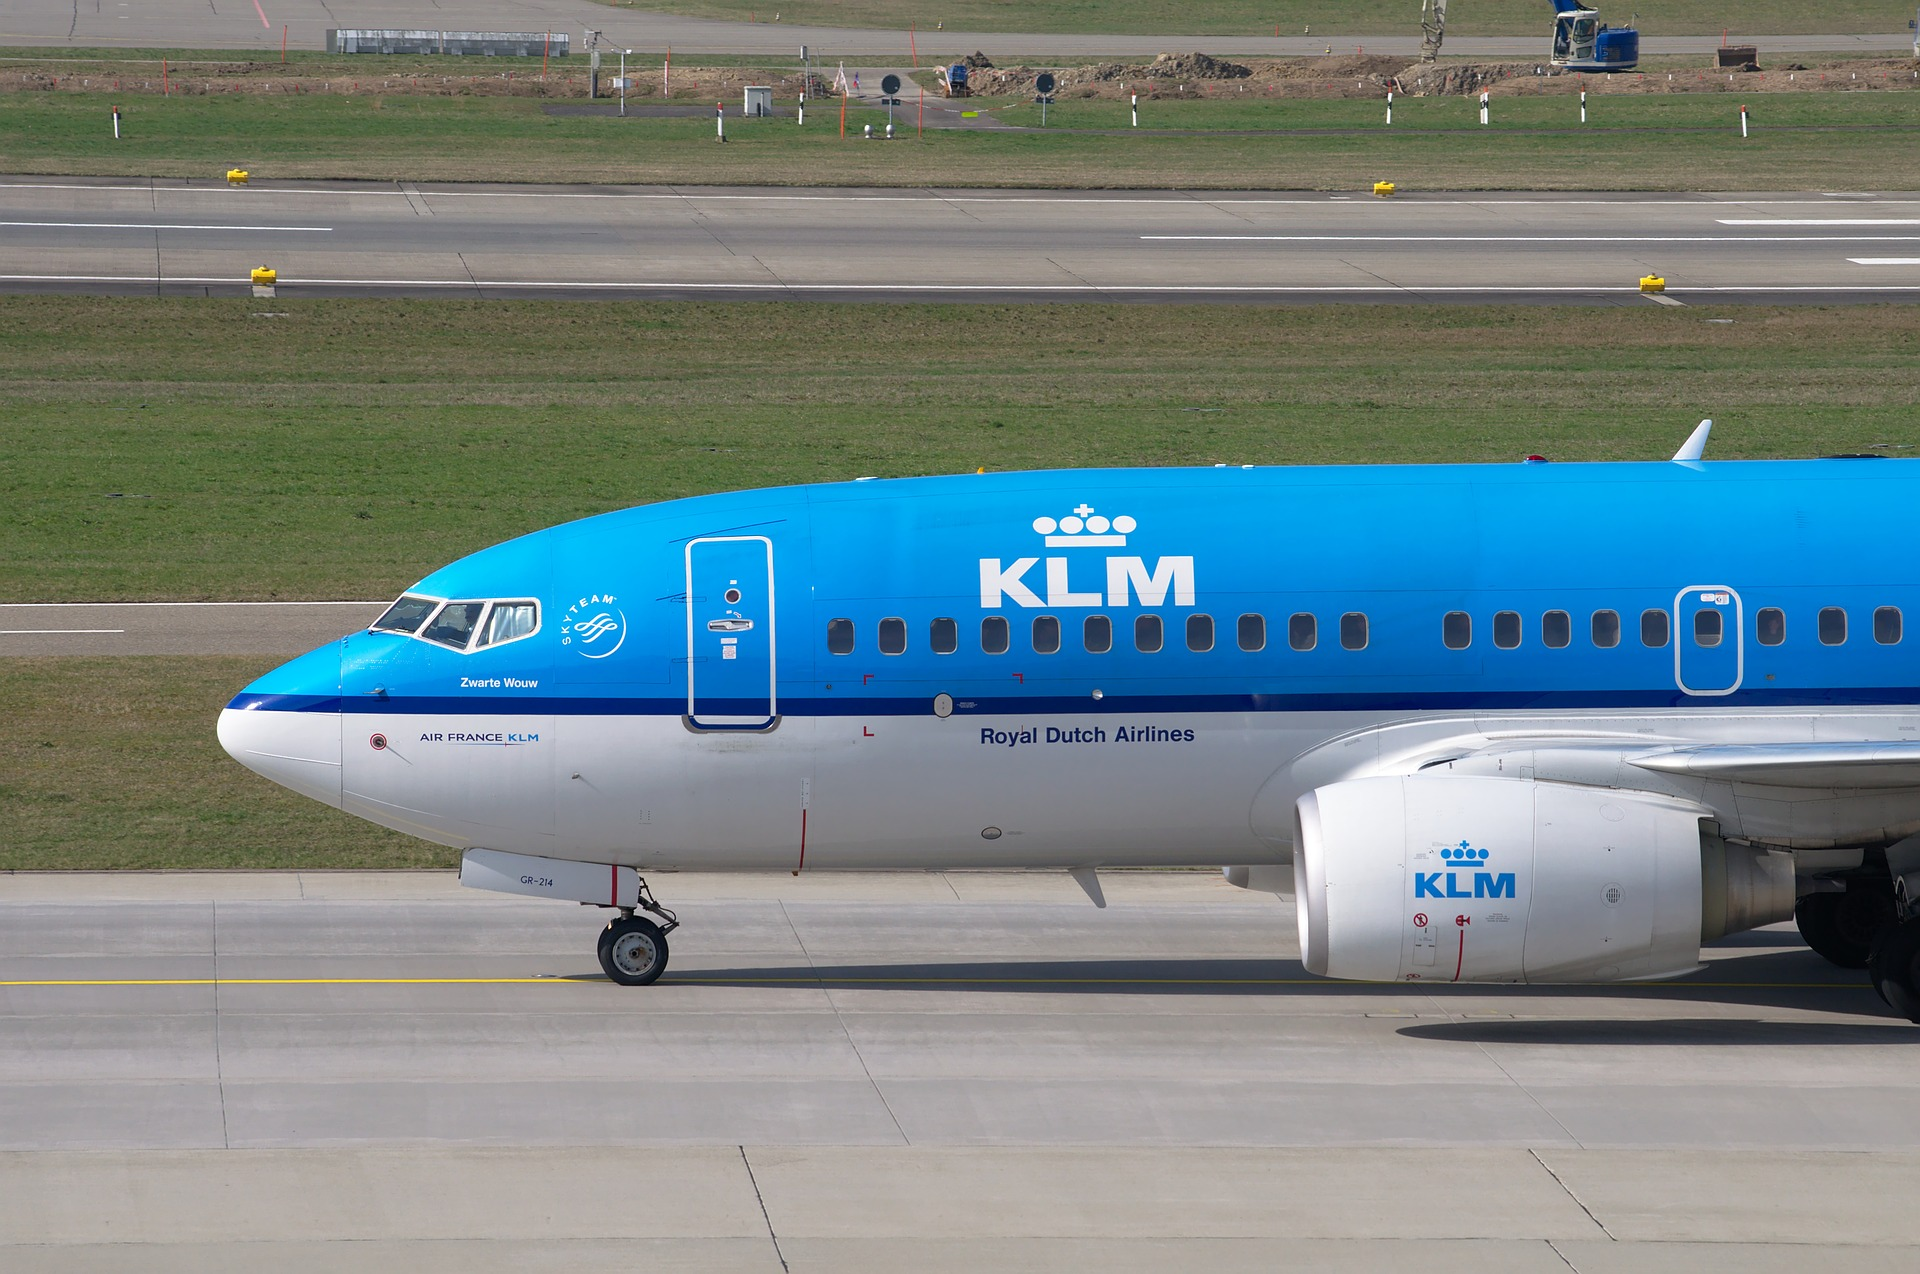 blue aircraft from KLM on airport